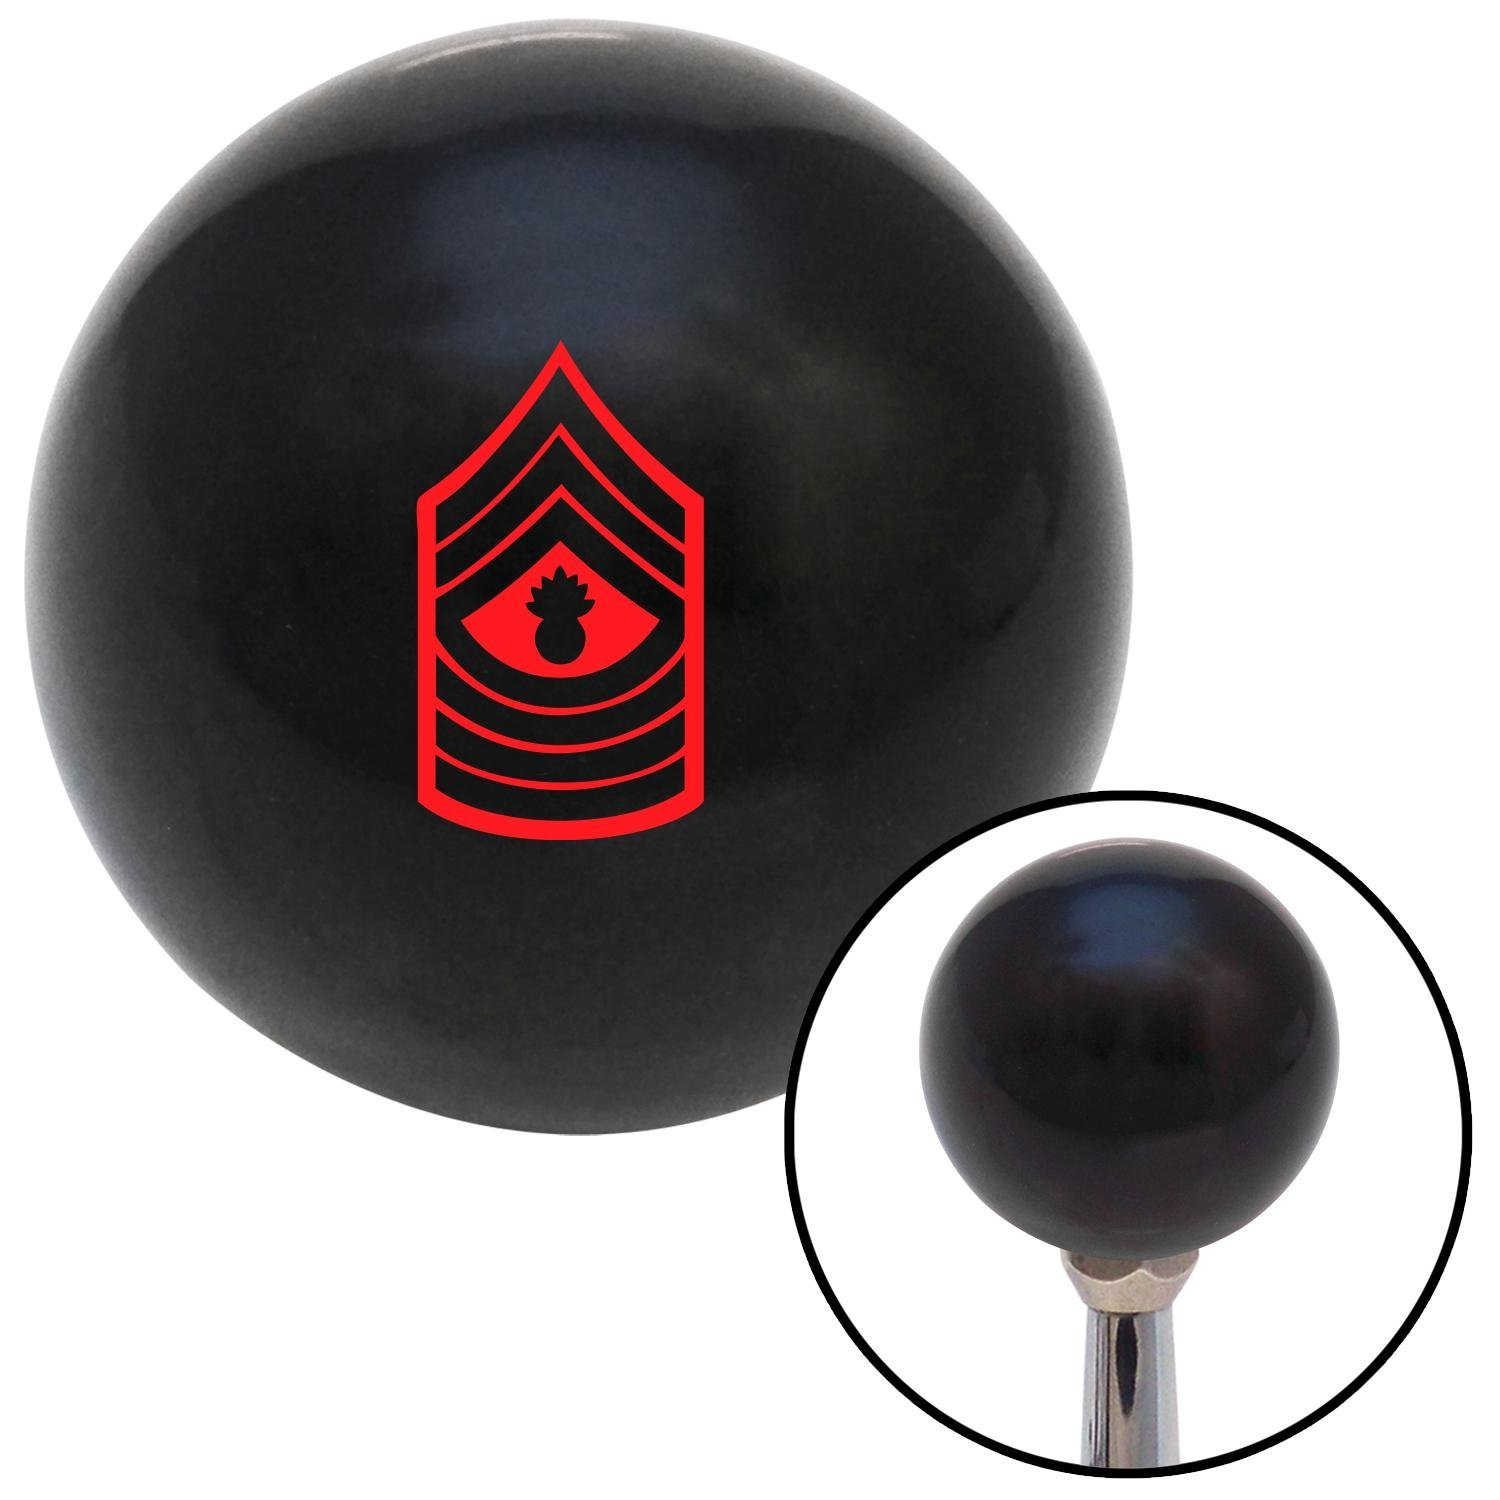 Red 09 Master Gunnery Sergeant American Shifter 107195 Black Shift Knob with M16 x 1.5 Insert